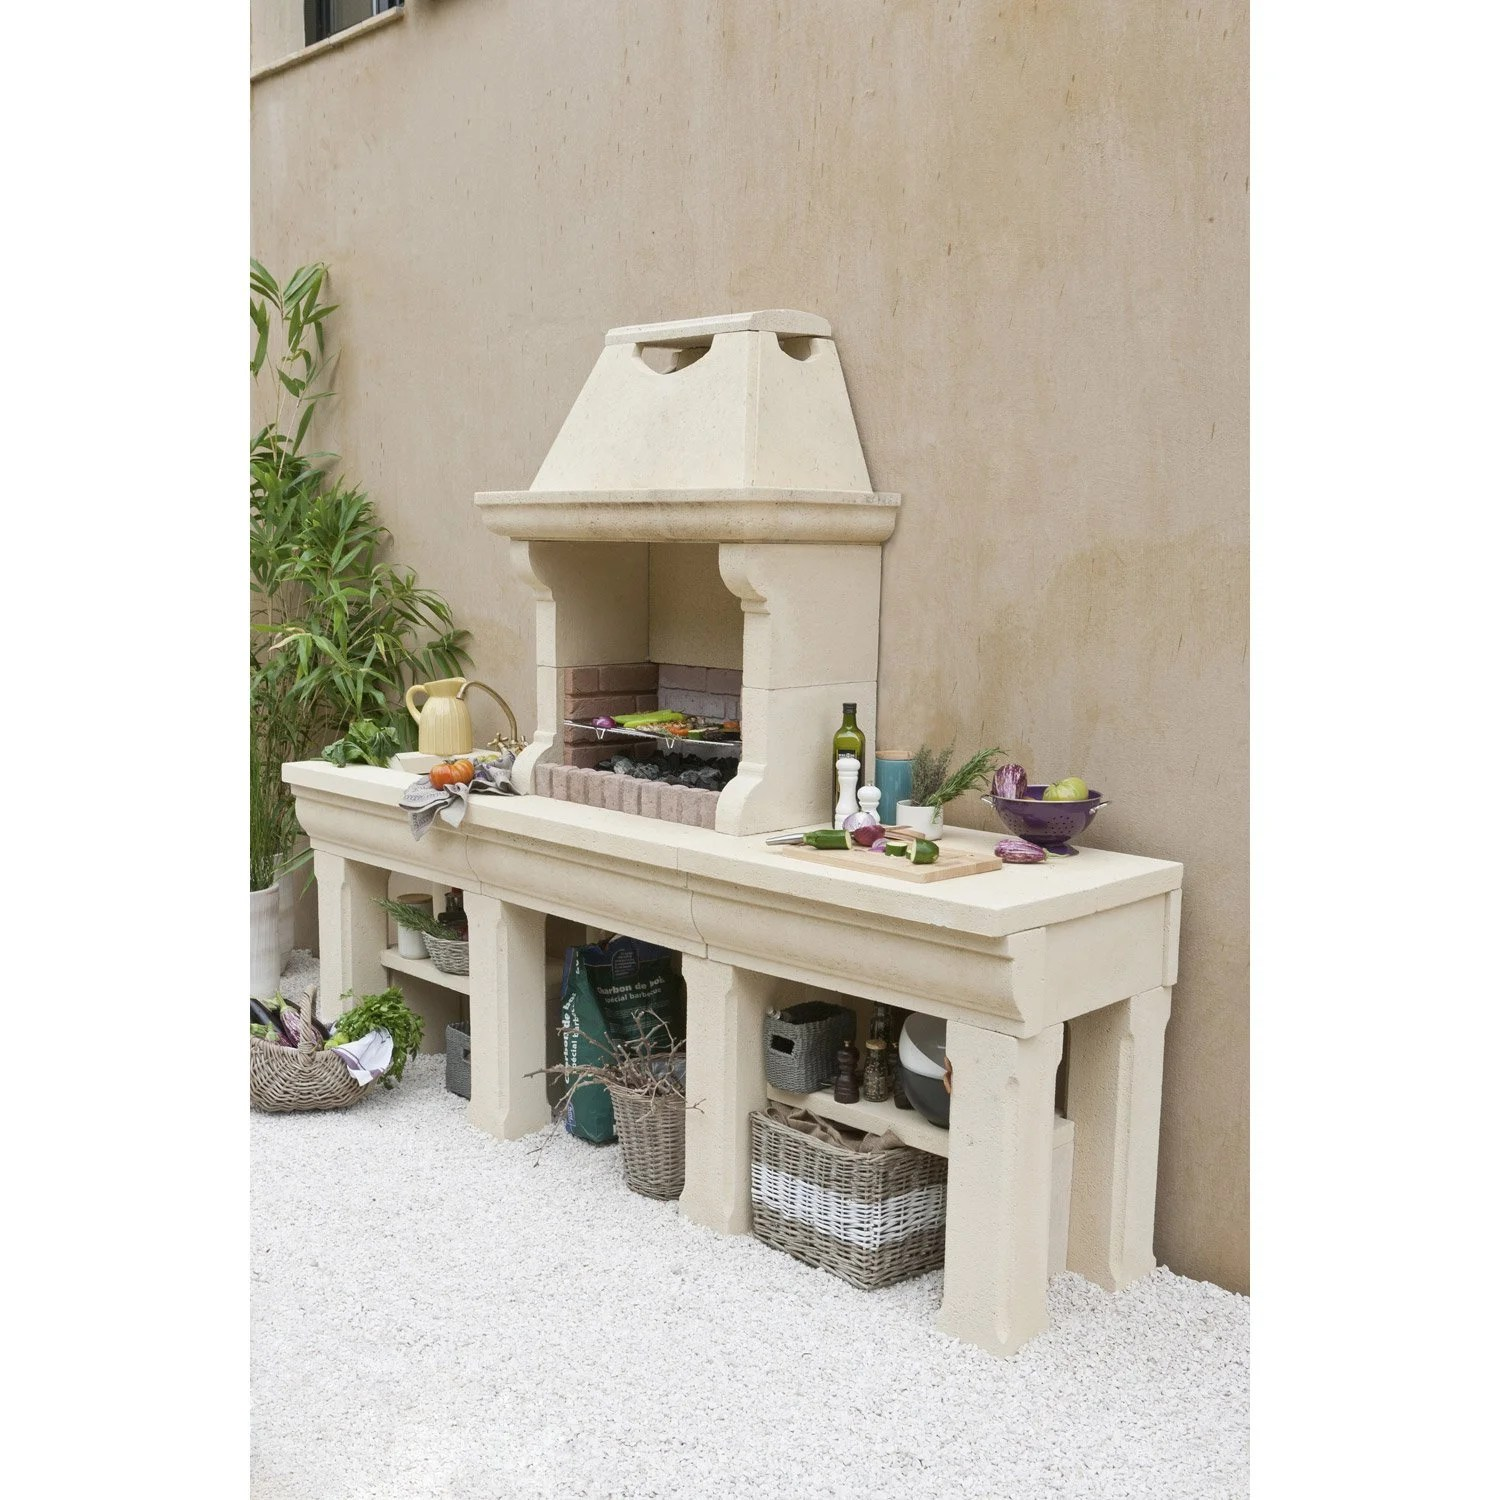 Barbecue En Dur Barbecue En Béton Beige Touraine L 64 X L 247 5 X H 207